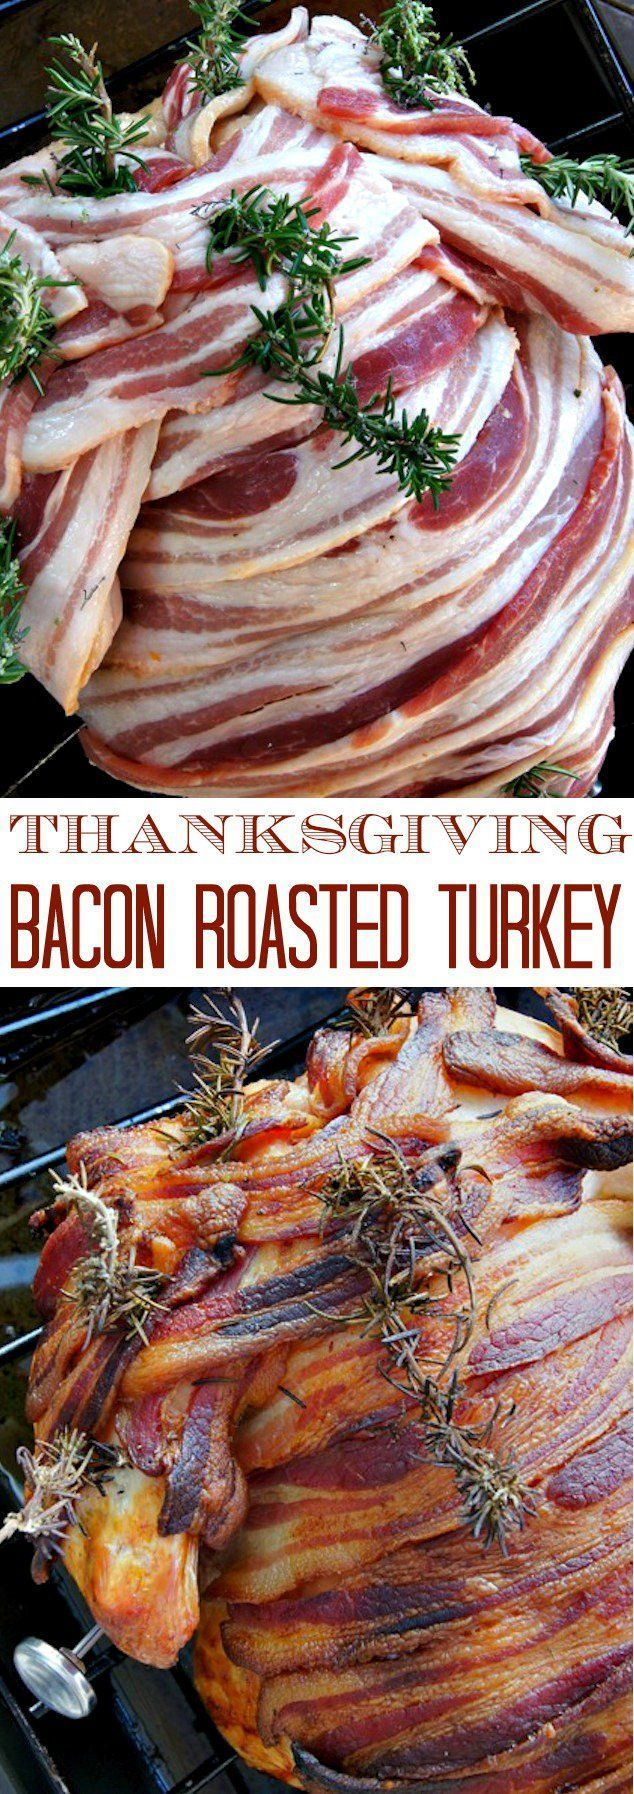 Smokey Paprika-Bacon Roasted Turkey (Every Recipe You Need For A Thanksgiving Feast!)- Brined whole roasted turkey covered with a super flavorful compound butter and wrapped in bacon!!